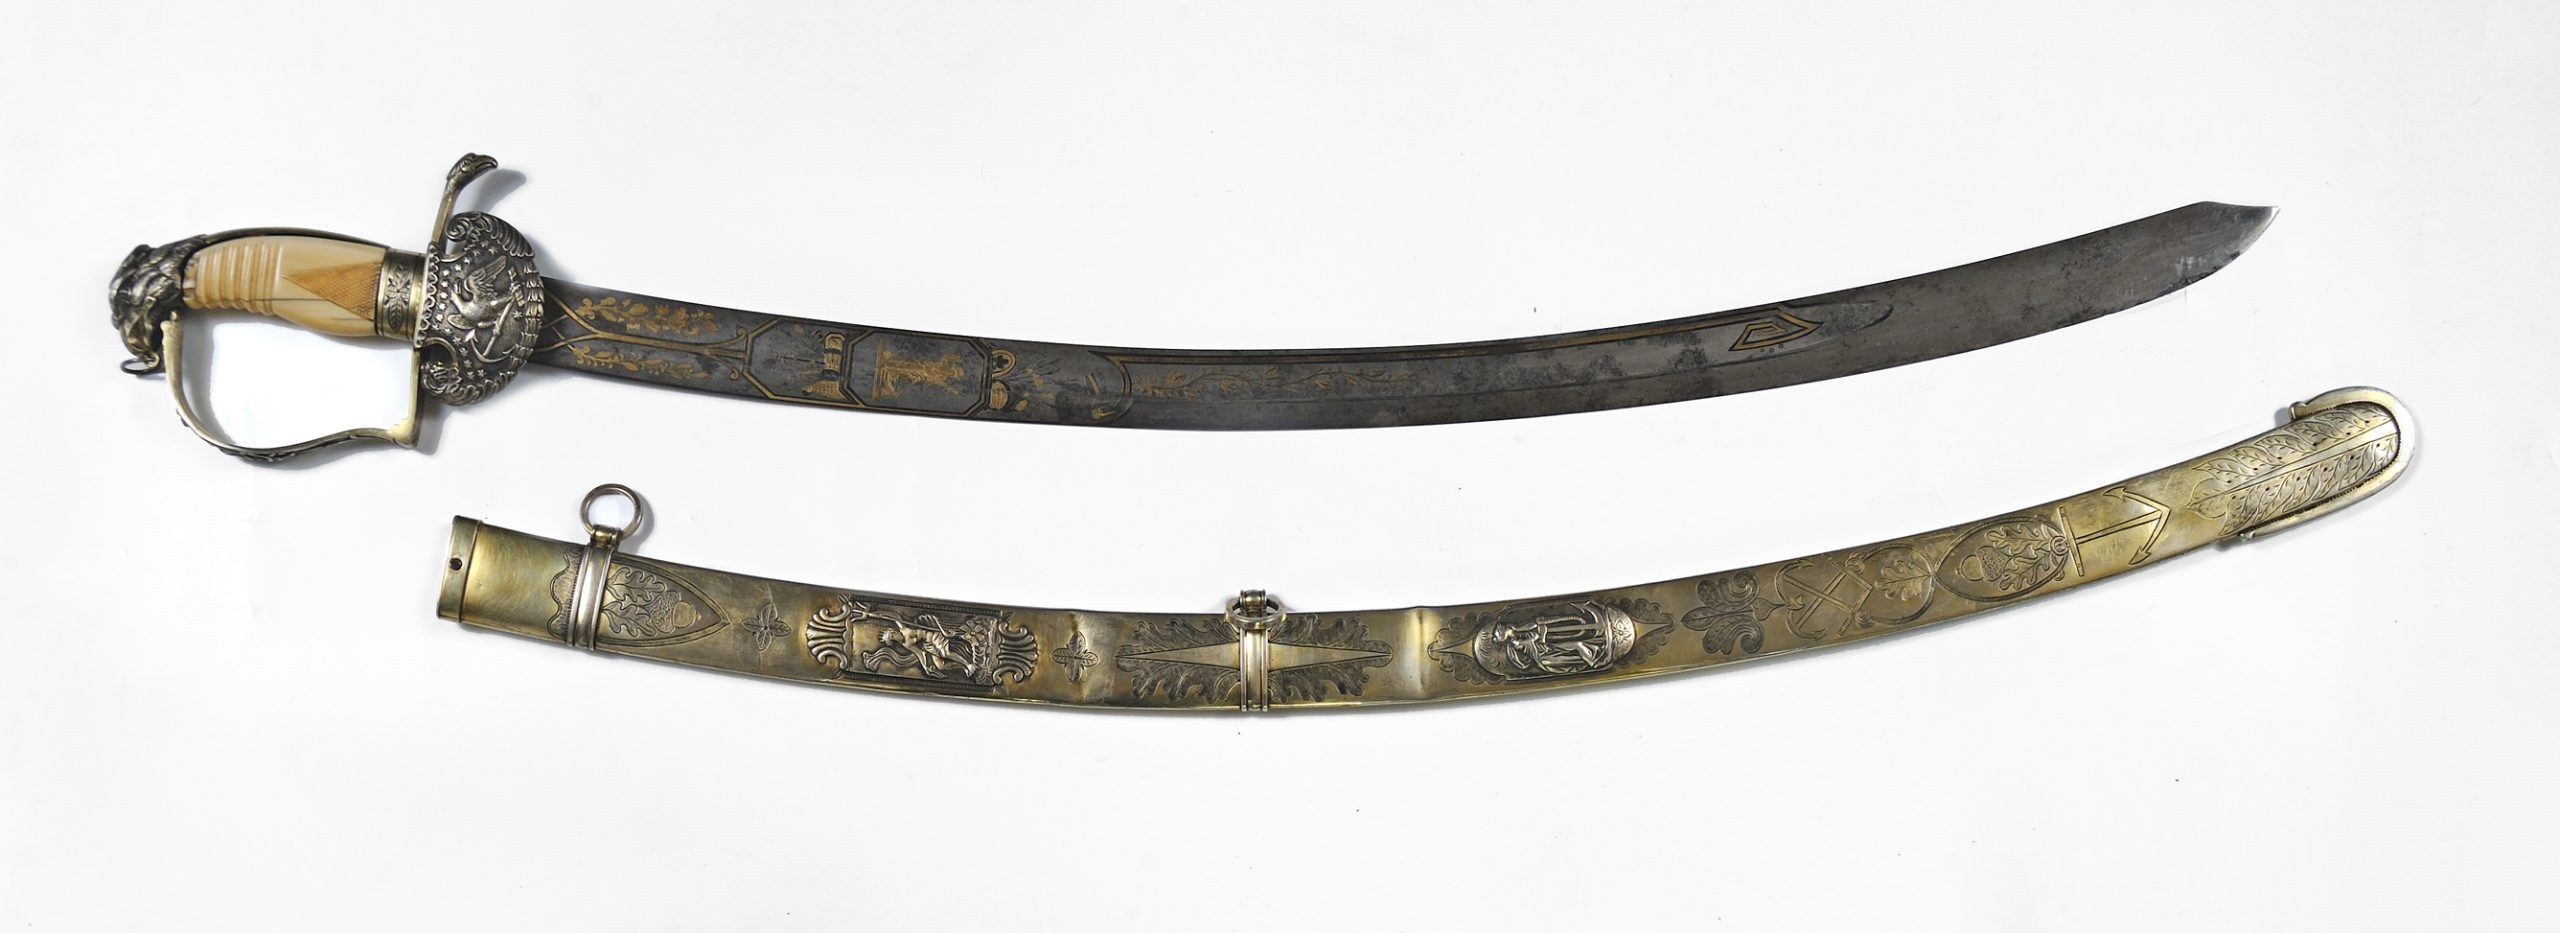 War of 1812 presentation sword and gilt metal scabbard